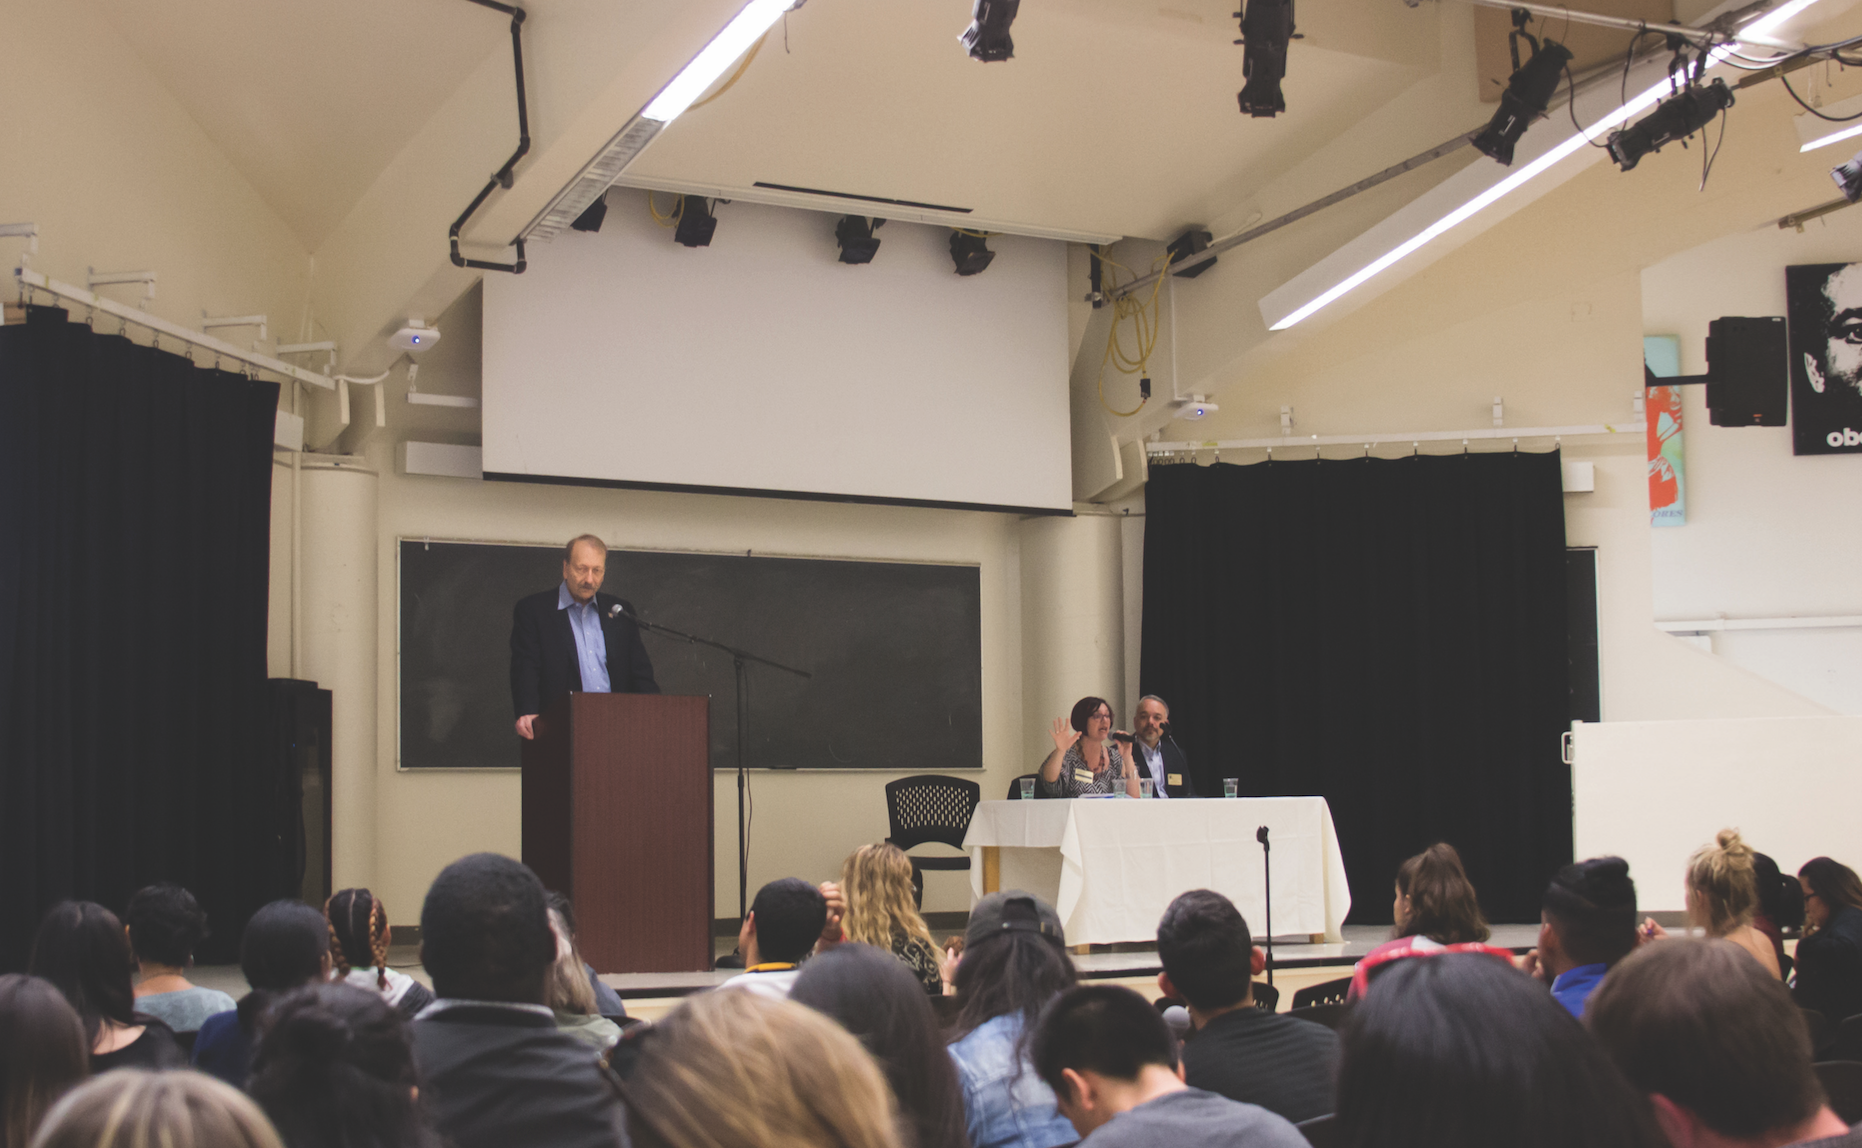 At Kresge's Town Hall on May 9, students were given the opportunity to voice issues and concerns to Chancellor Blumenthal, Campus Diversity Officer Teresa Maria Linda Scholz and interim Executive Vice Chancellor Herbie Lee. Photo by Danielle Del Rosario.